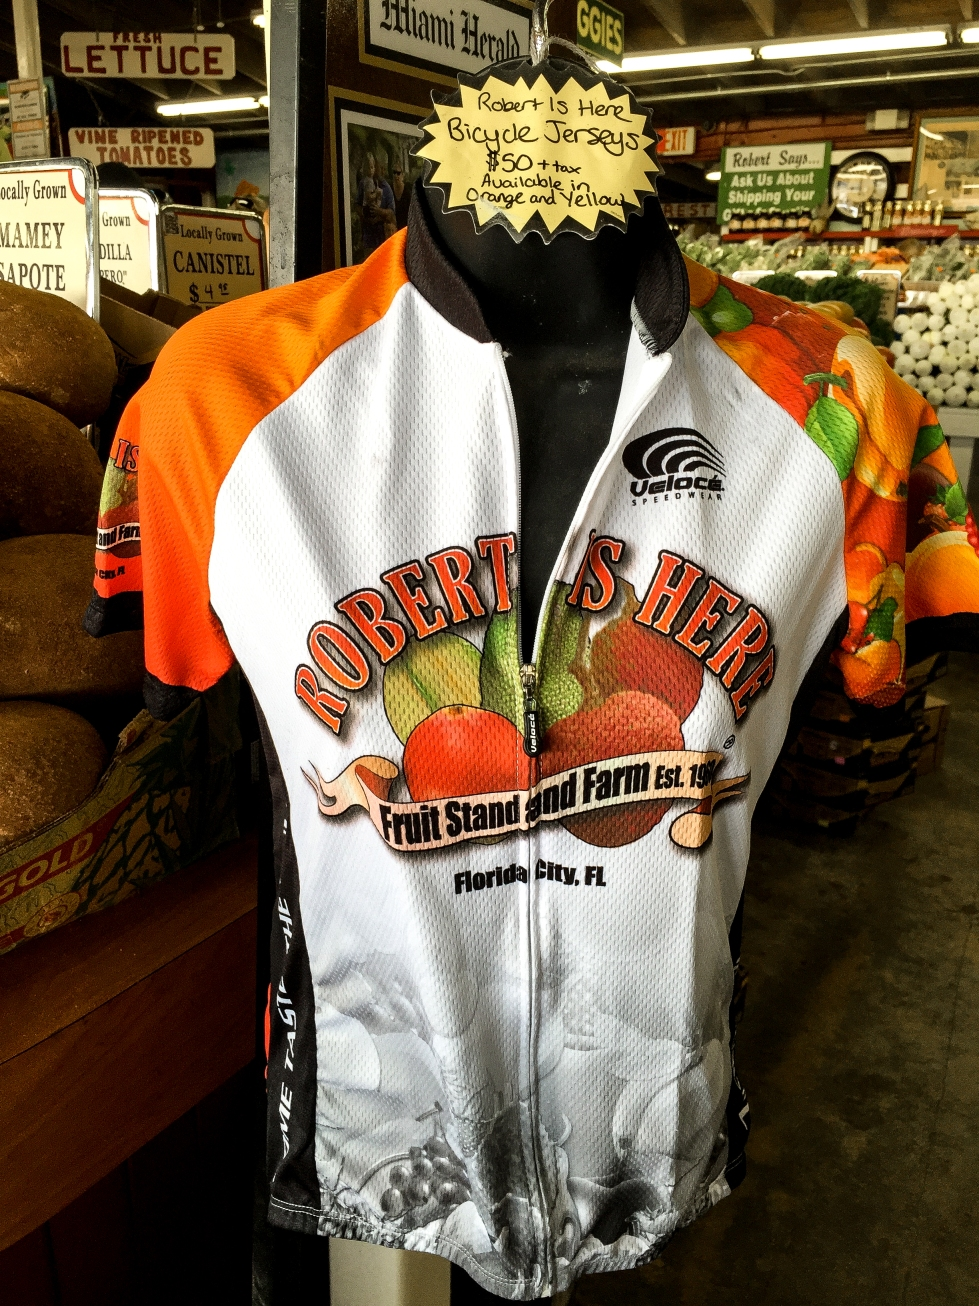 bycicle jersey